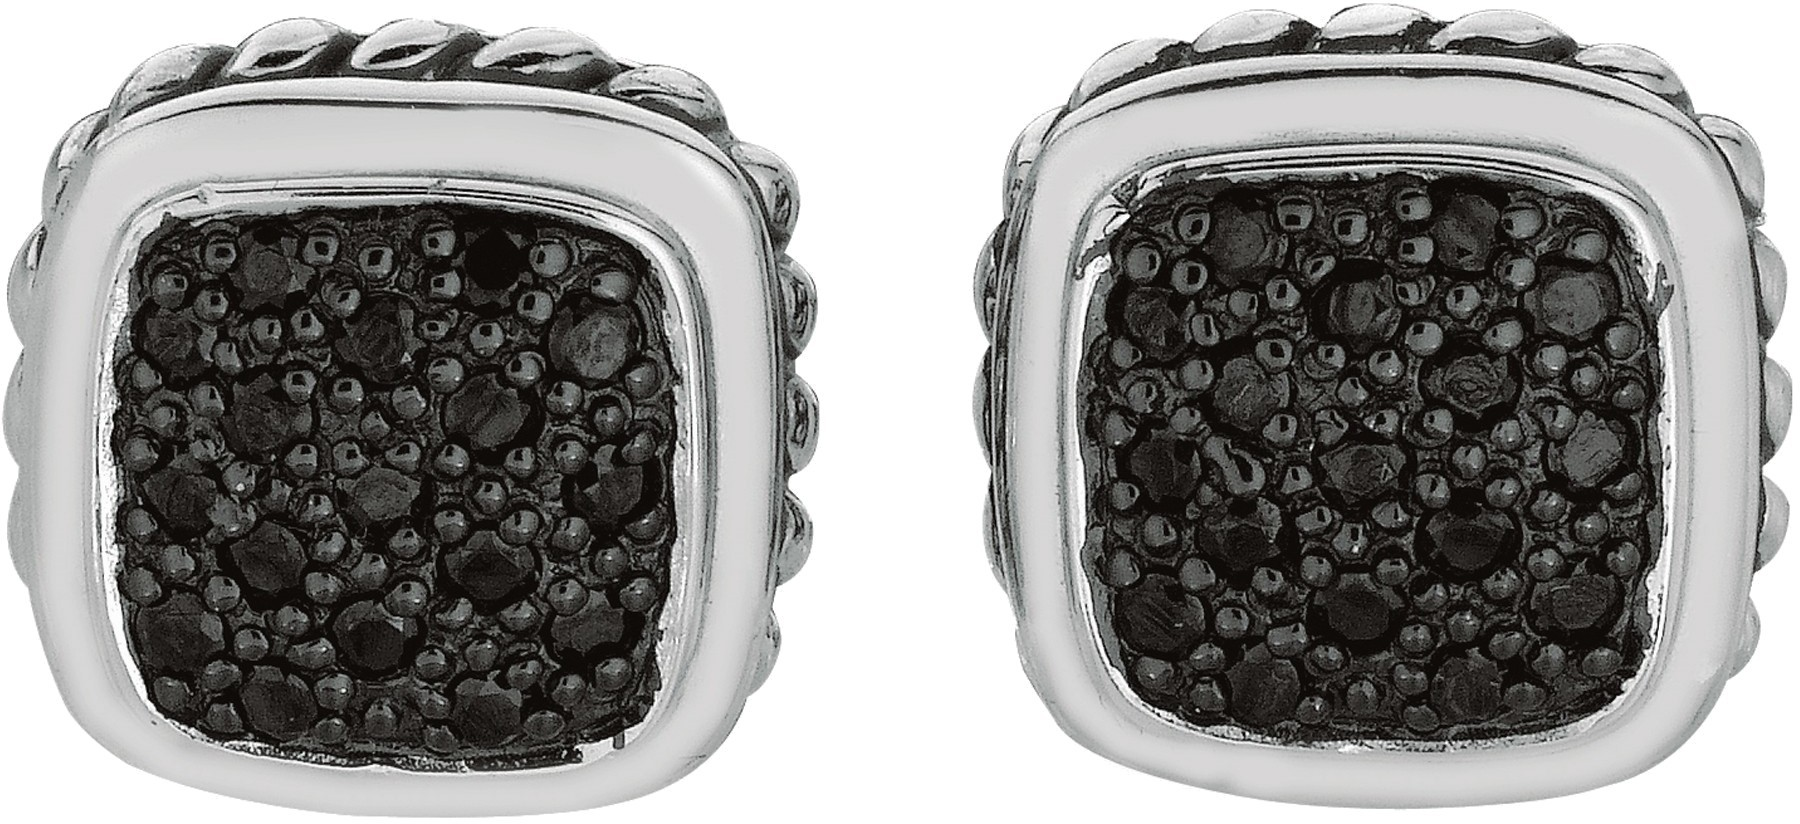 "Silver Rhodium Plated Shiny 13mm (1/2"") Fancy Square Post Earrings w/ Black Cubic Zirconia (CZ)"